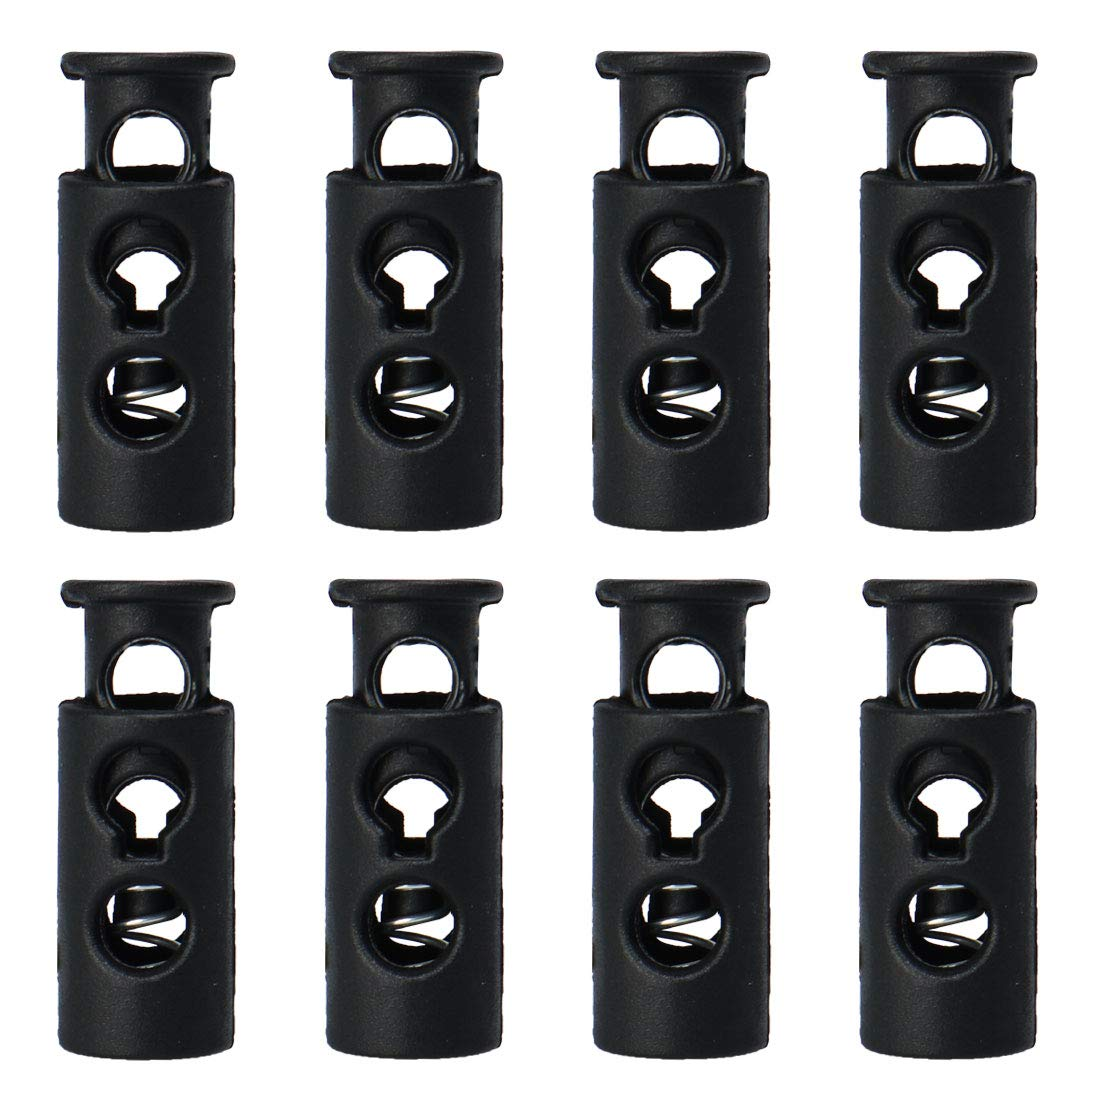 uxcell 6pcs Spring Cord Locks Plastic End Stopper Double Holes Toggle Fastener Rope End for Drawstrings Tie-Downs Metal Black Tent Shoelaces